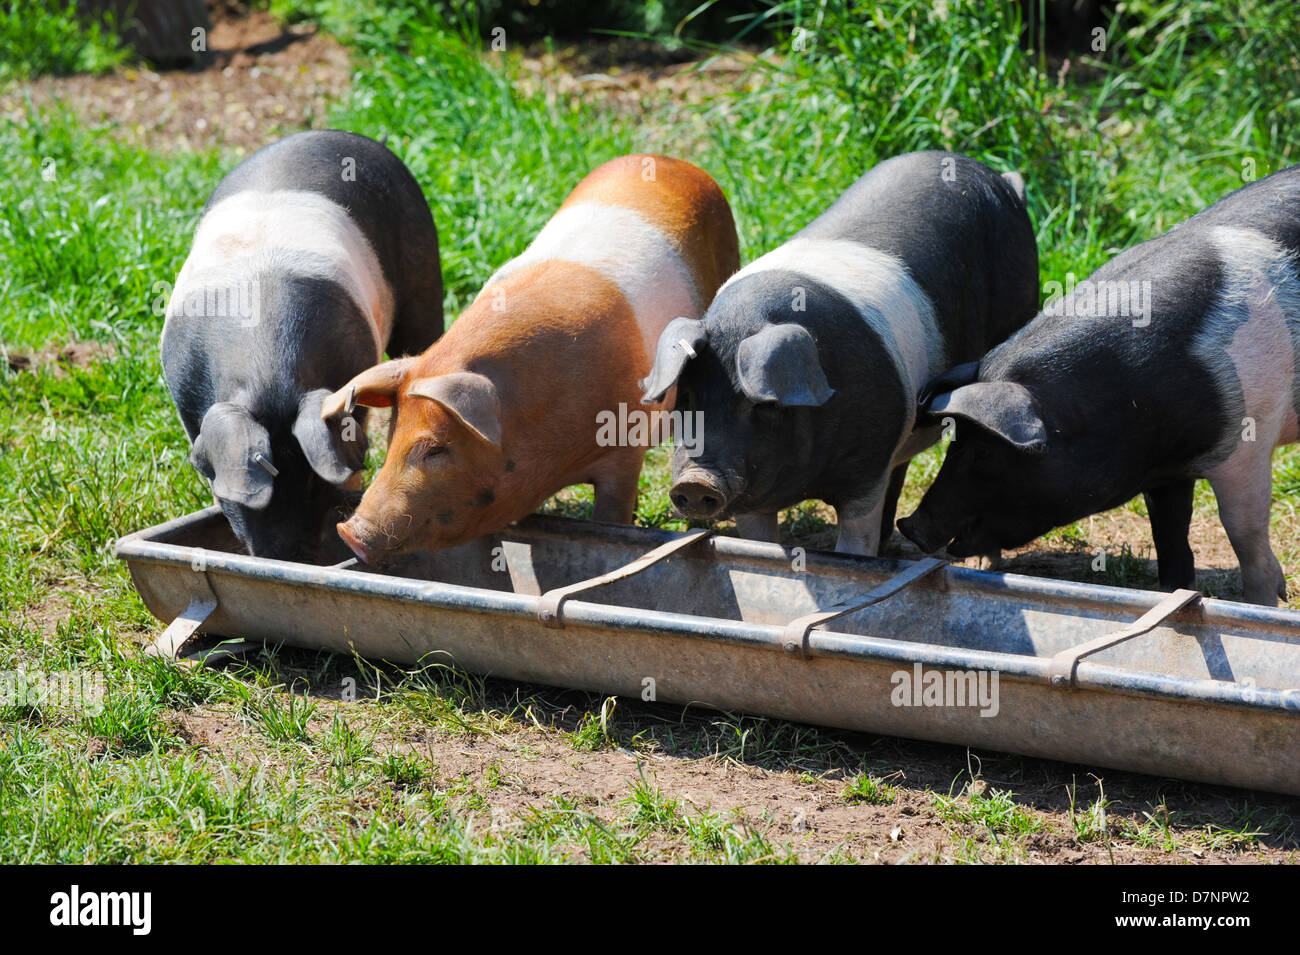 British saddleback pigs eating from a trough - Stock Image